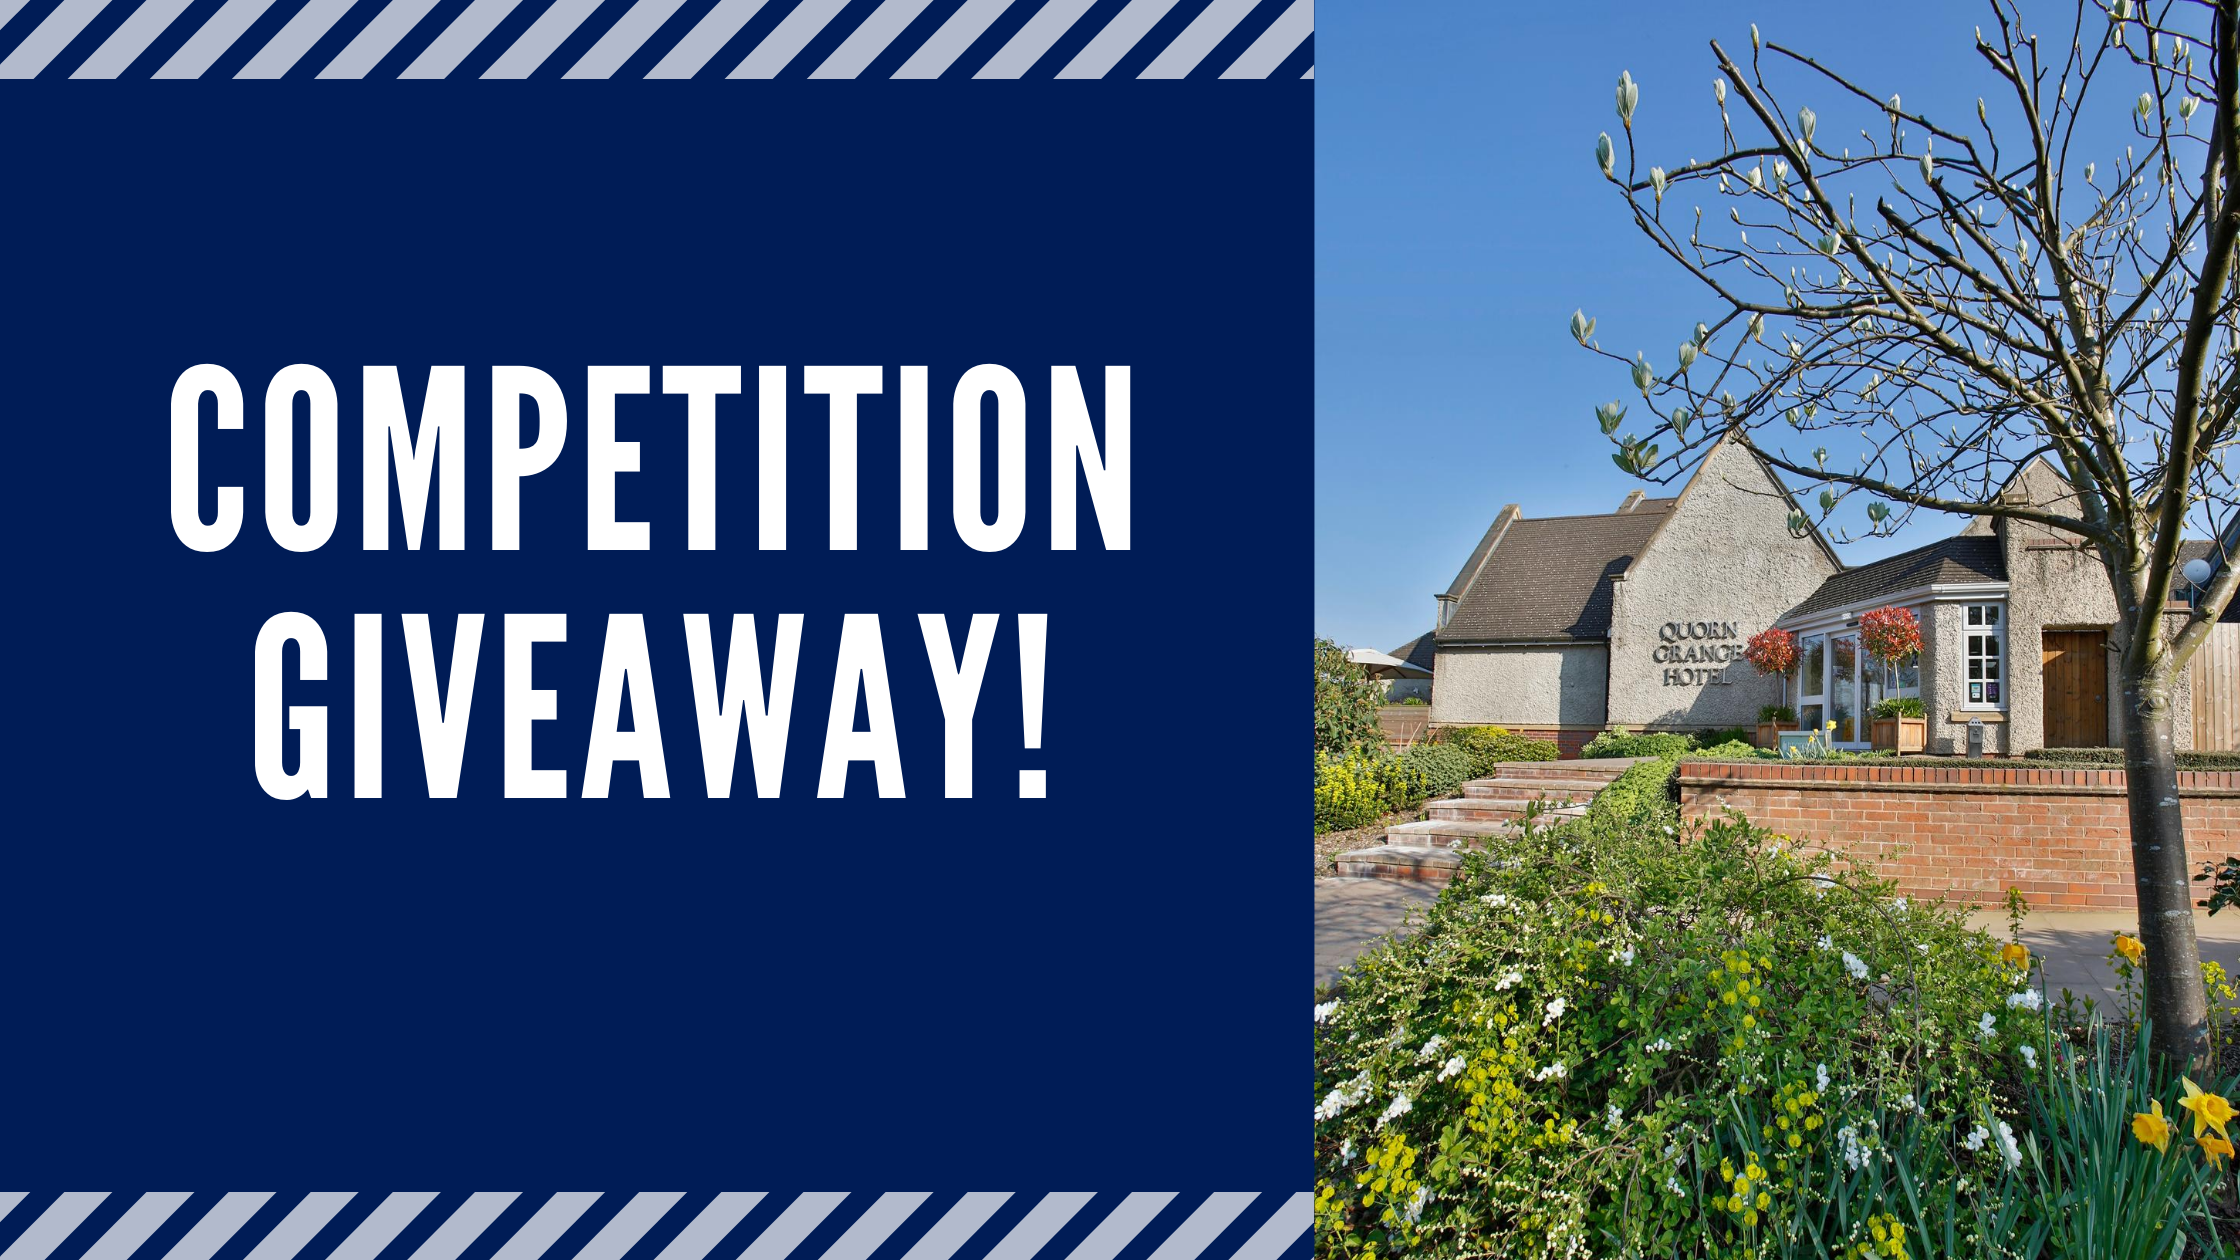 Competition Giveaway image of Quorn Grange Hotel